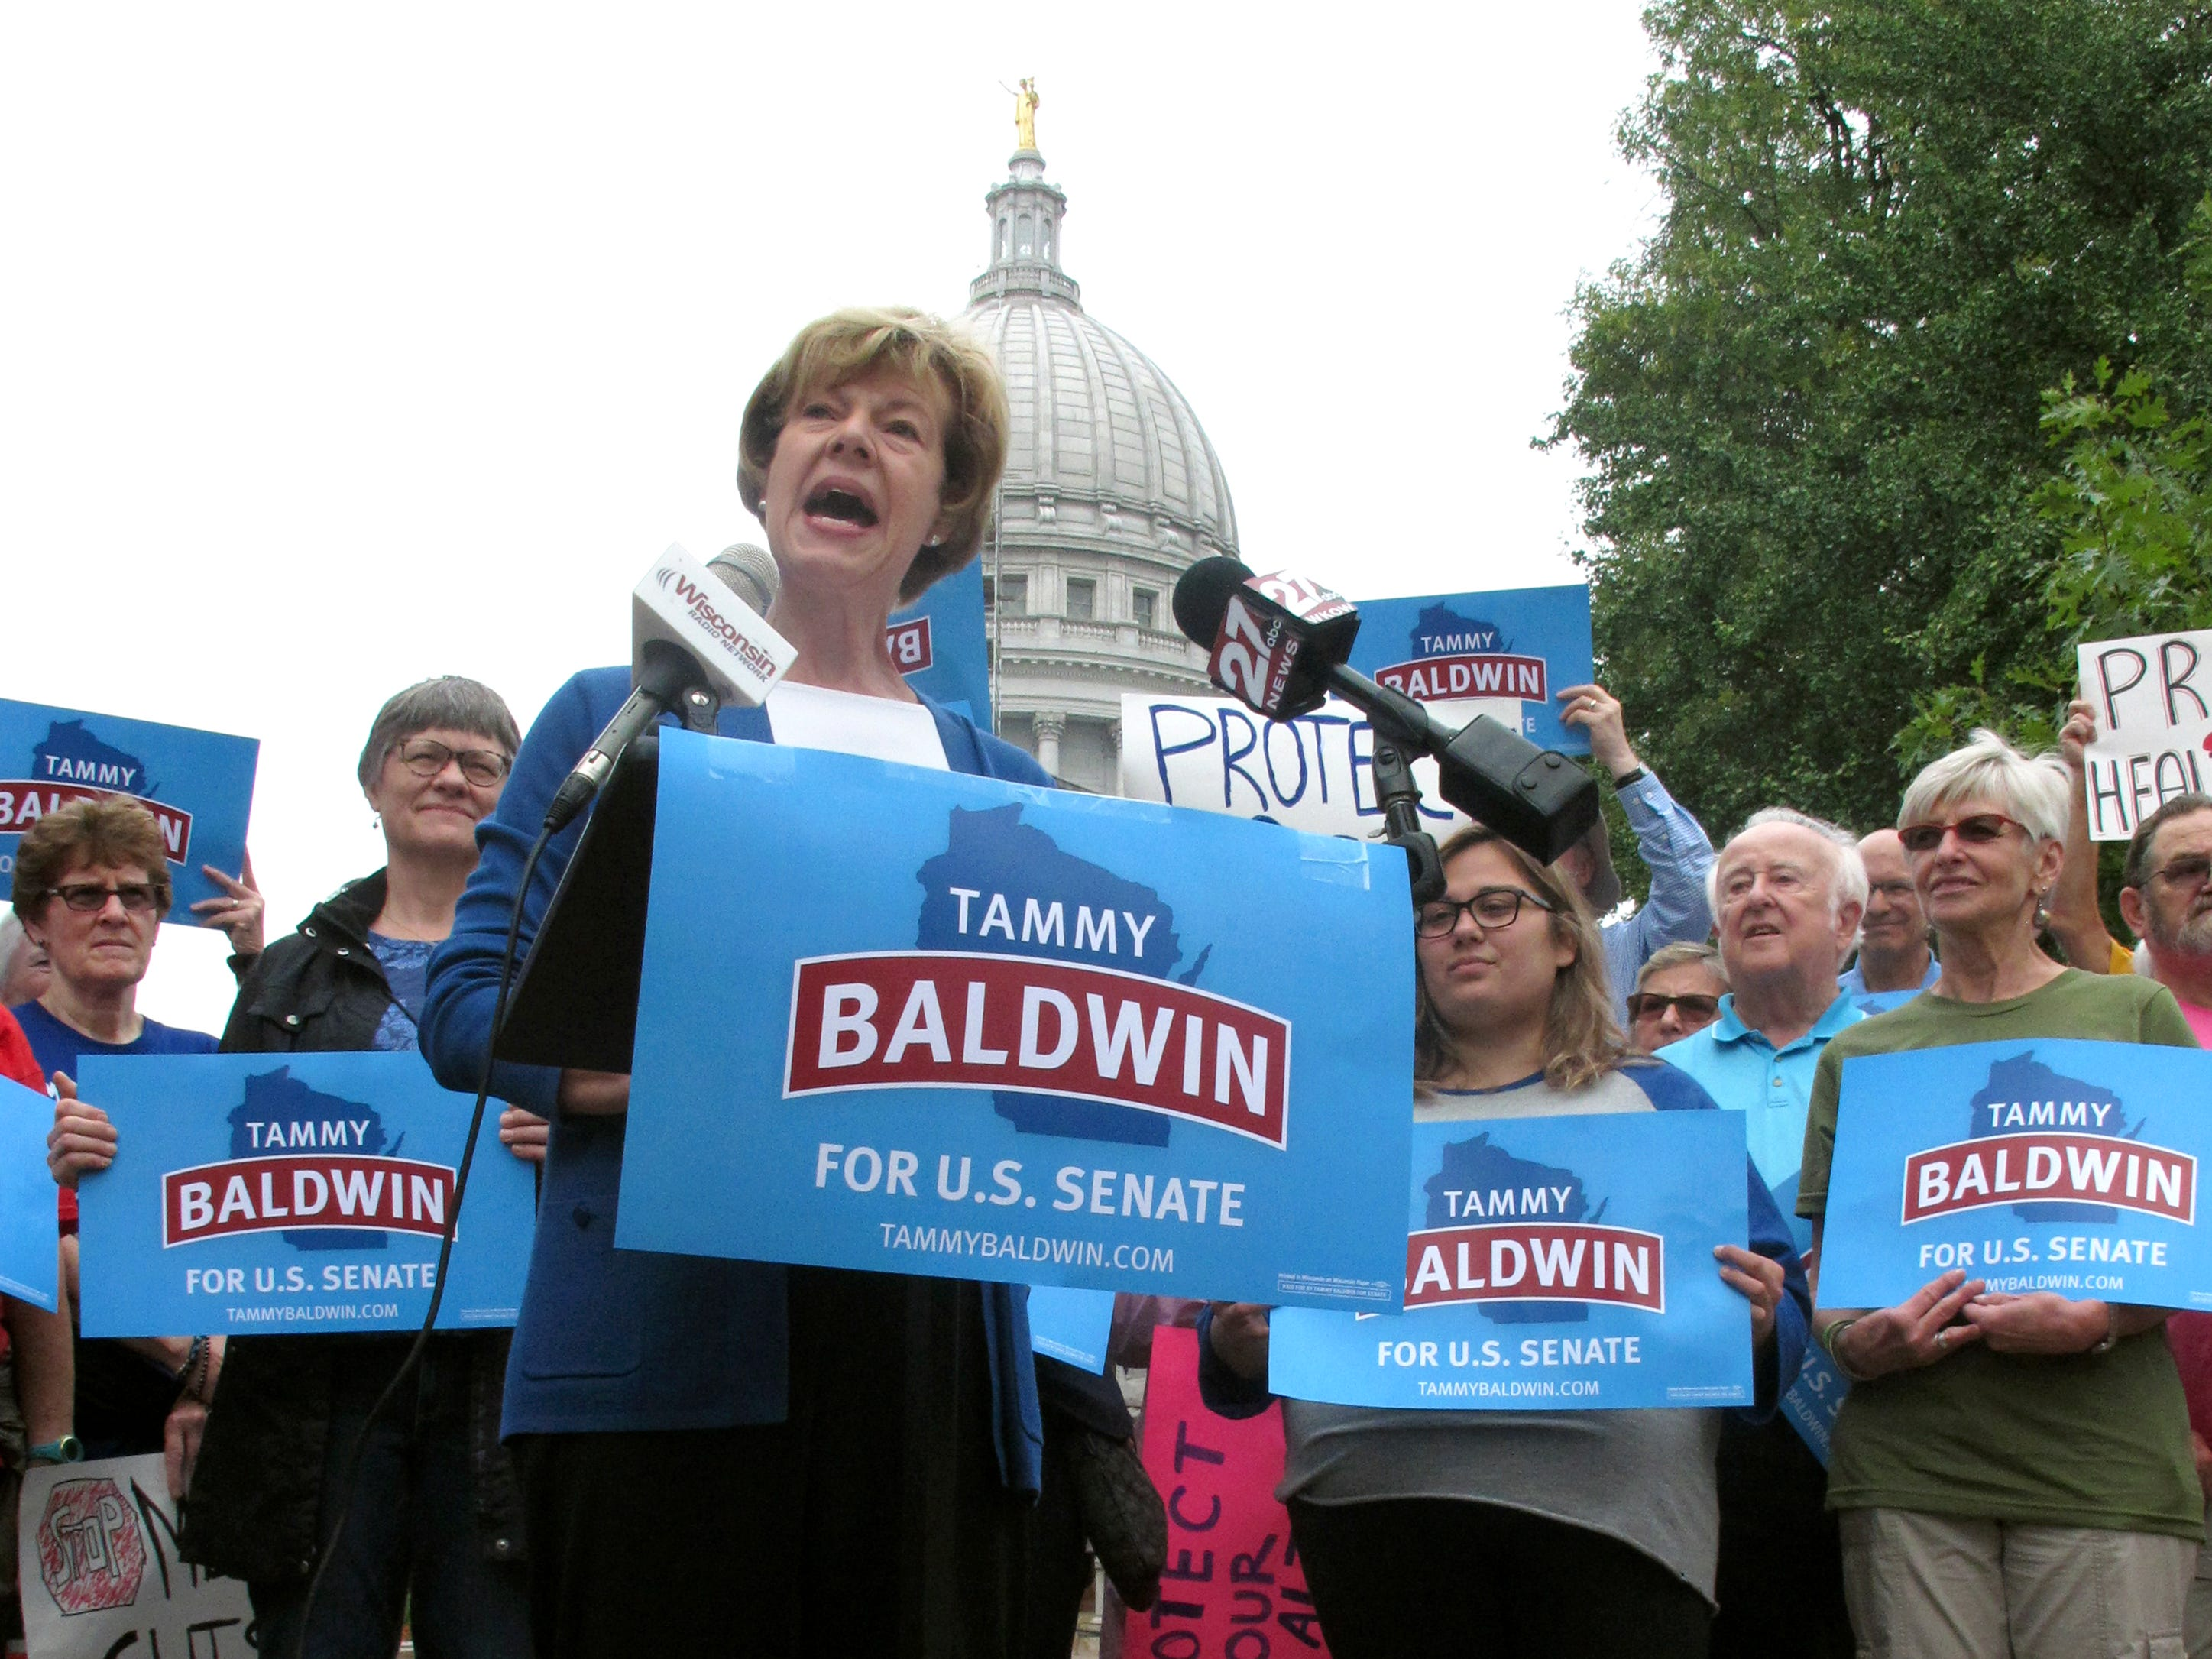 U.S. Sen. Tammy Baldwin, D-Wis., speaks to supporters and talks about her support for the national health care law before encouraging early voting Sept. 20.